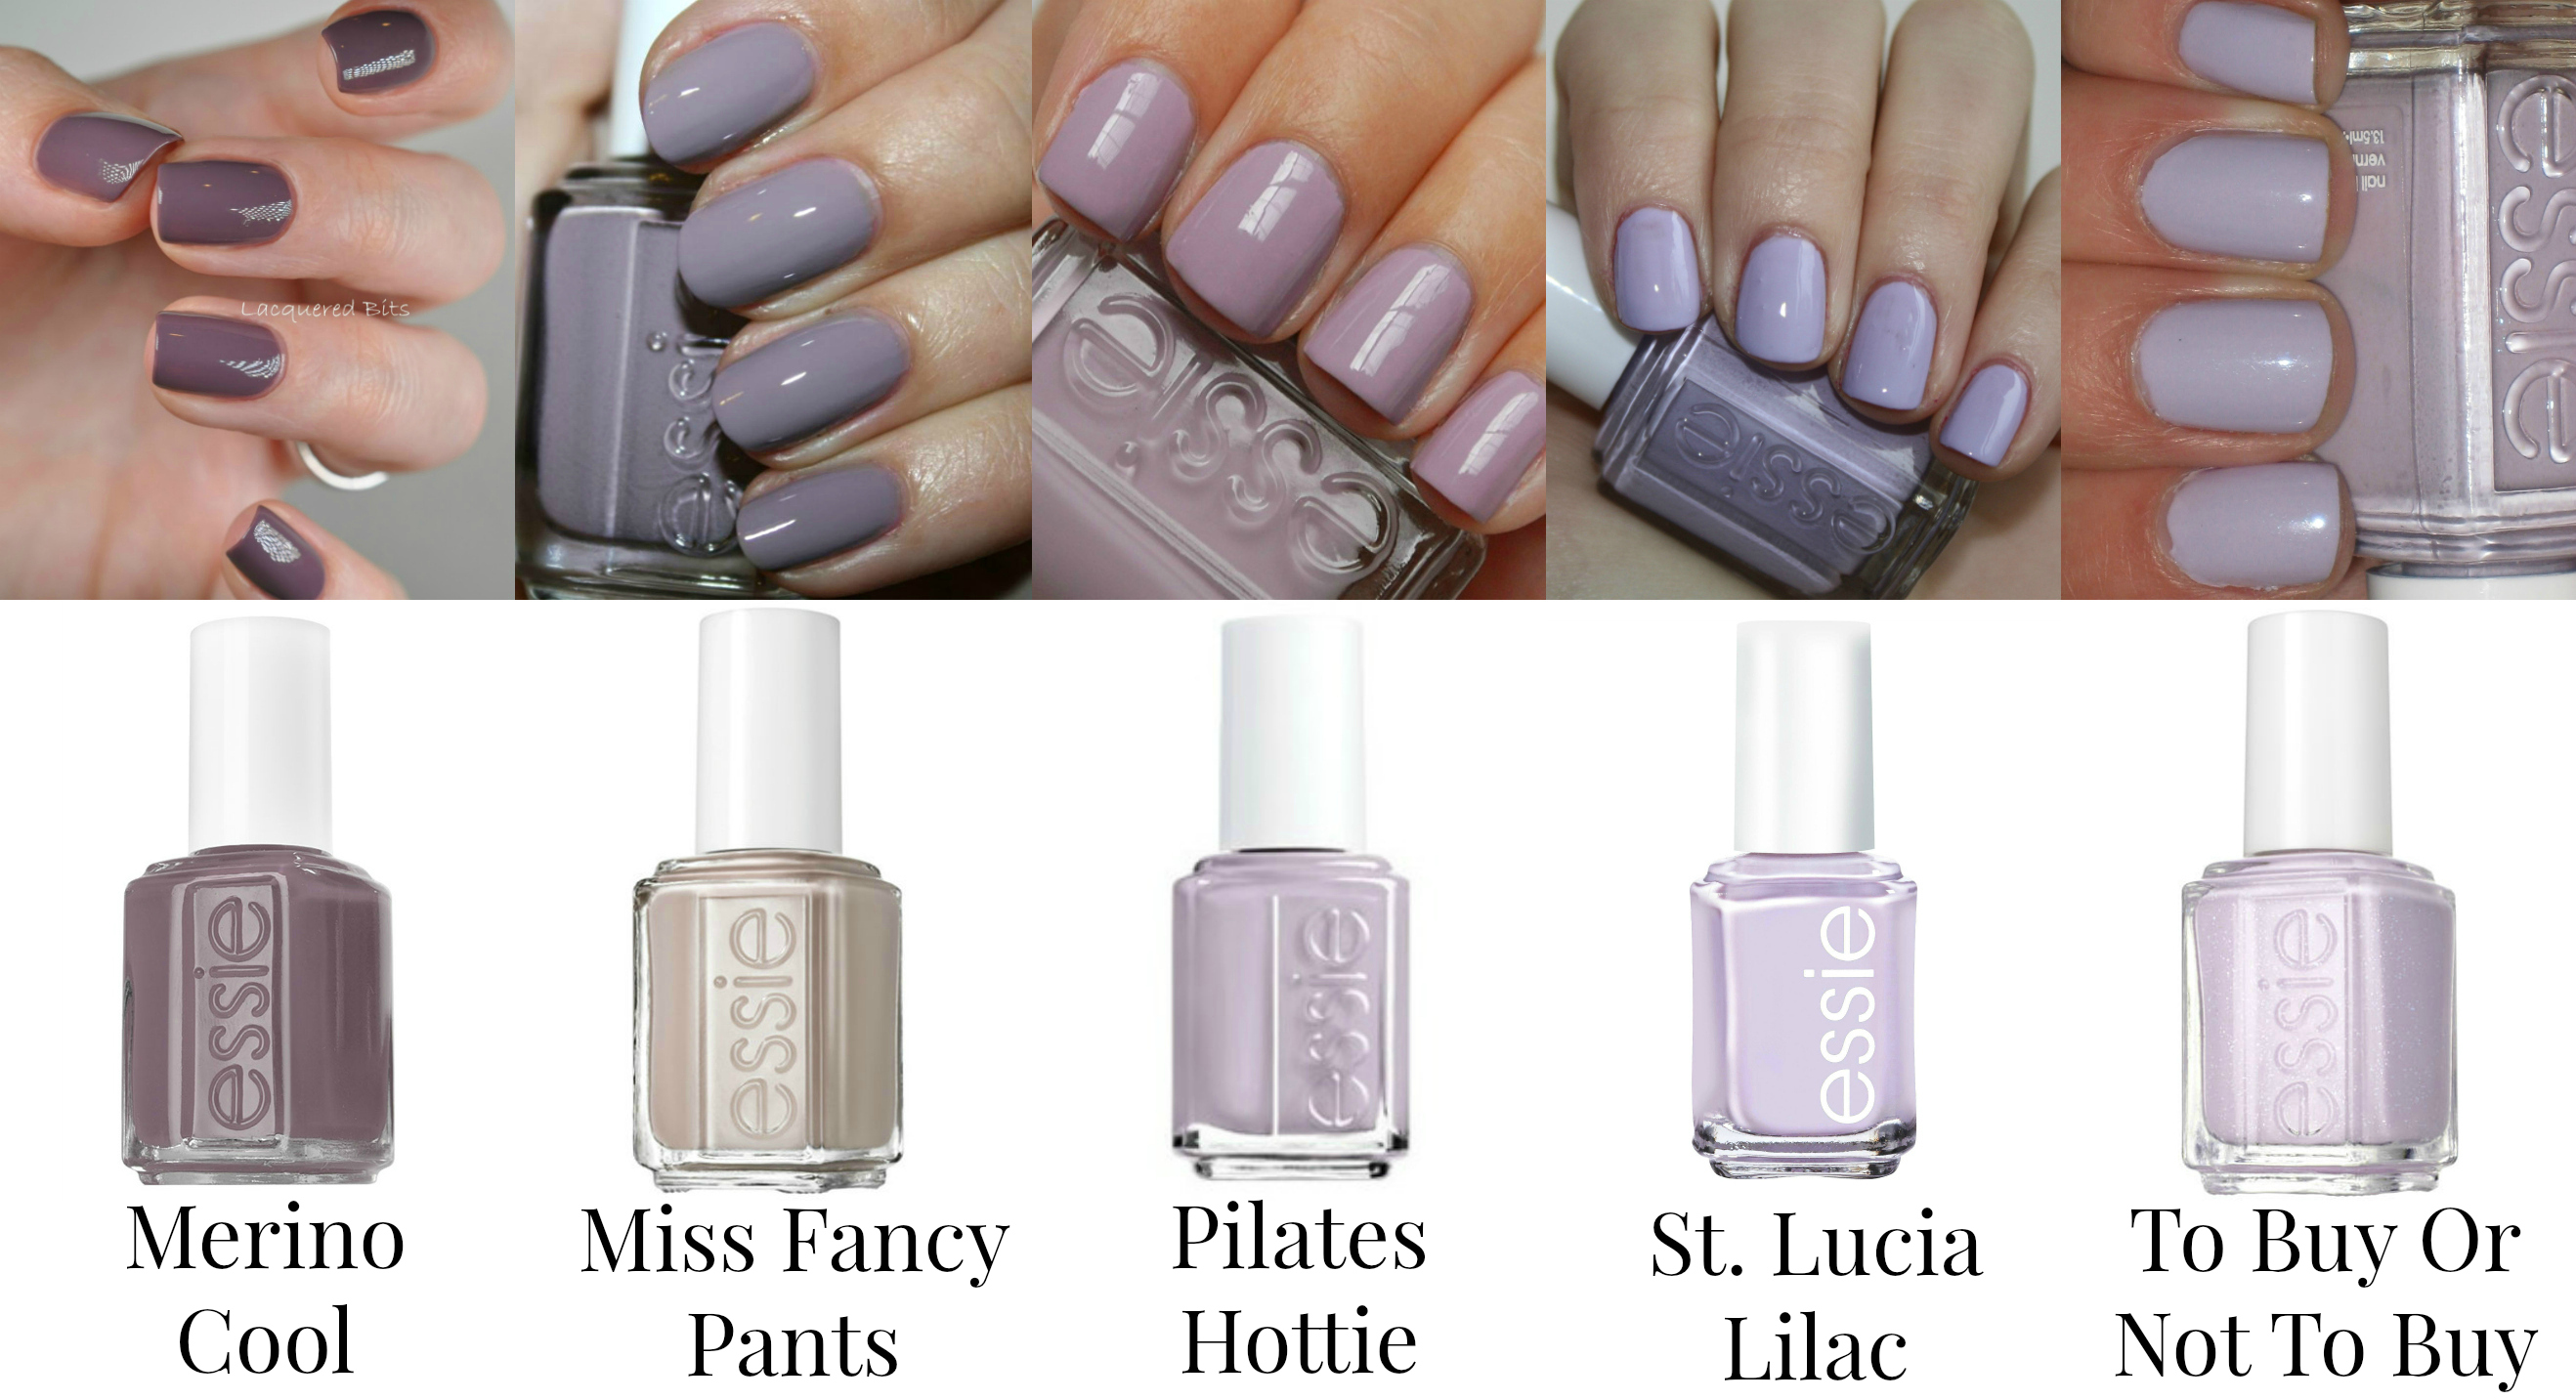 How Much Does A Bottle Of Essie Nail Polish Cost | Splendid Wedding ...